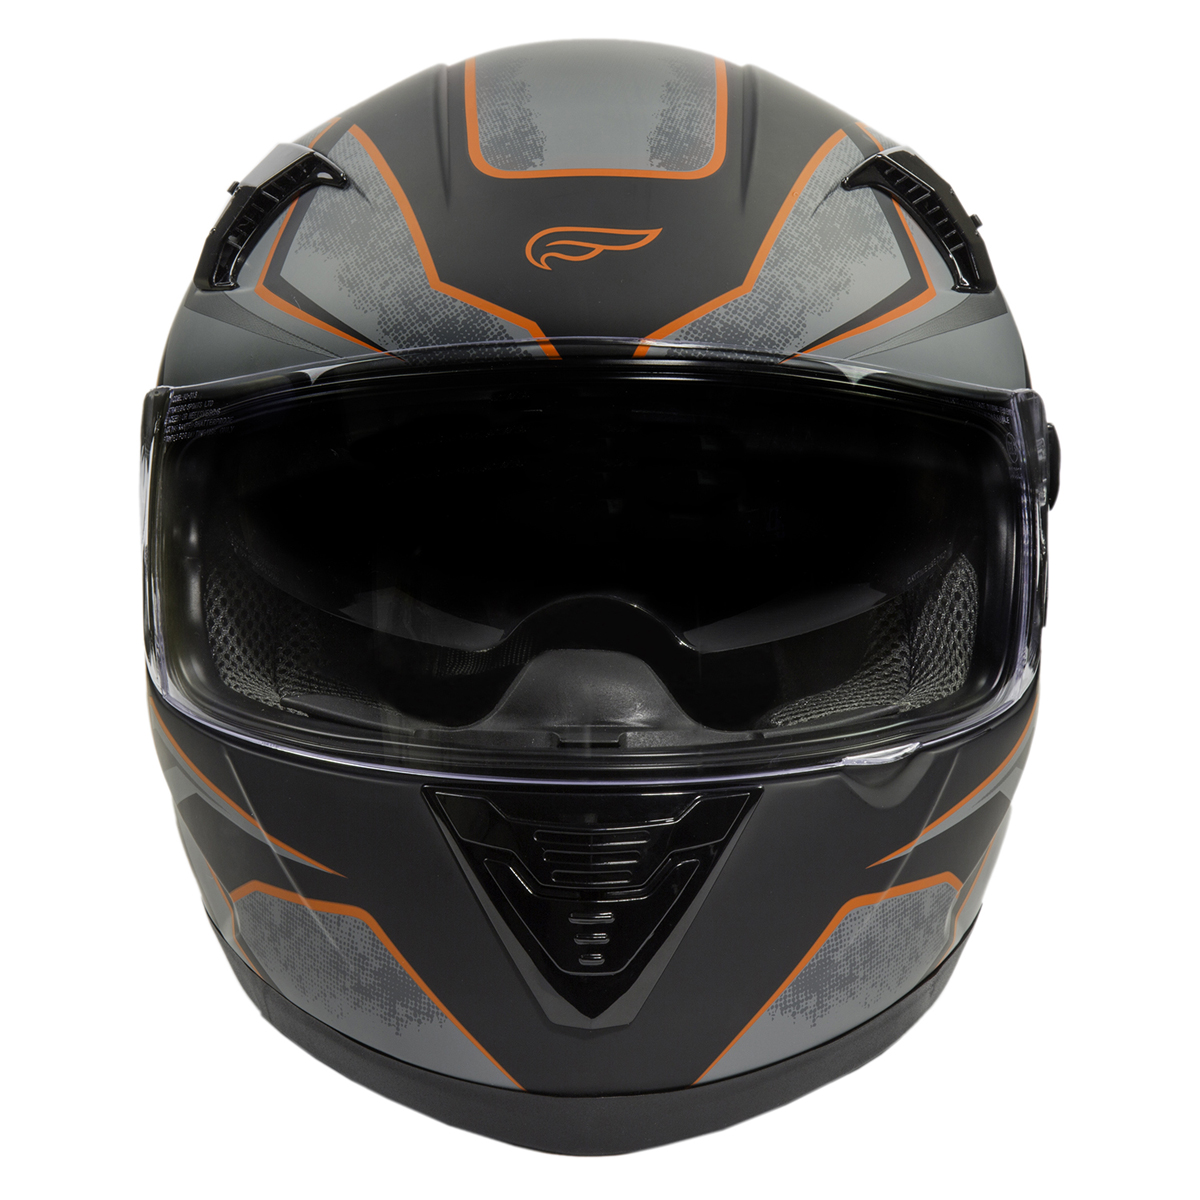 Fulmer-Adult-Full-Face-Motorcycle-Helmet-151-Pulse-DOT-Approved-Street-Bike thumbnail 23